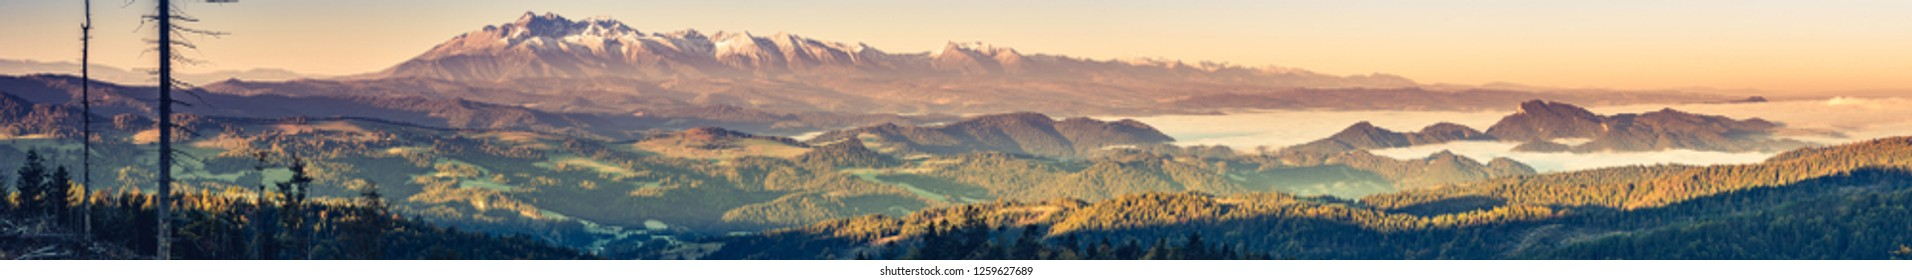 Tatra mountains panorama, autumn sunrise, Poland